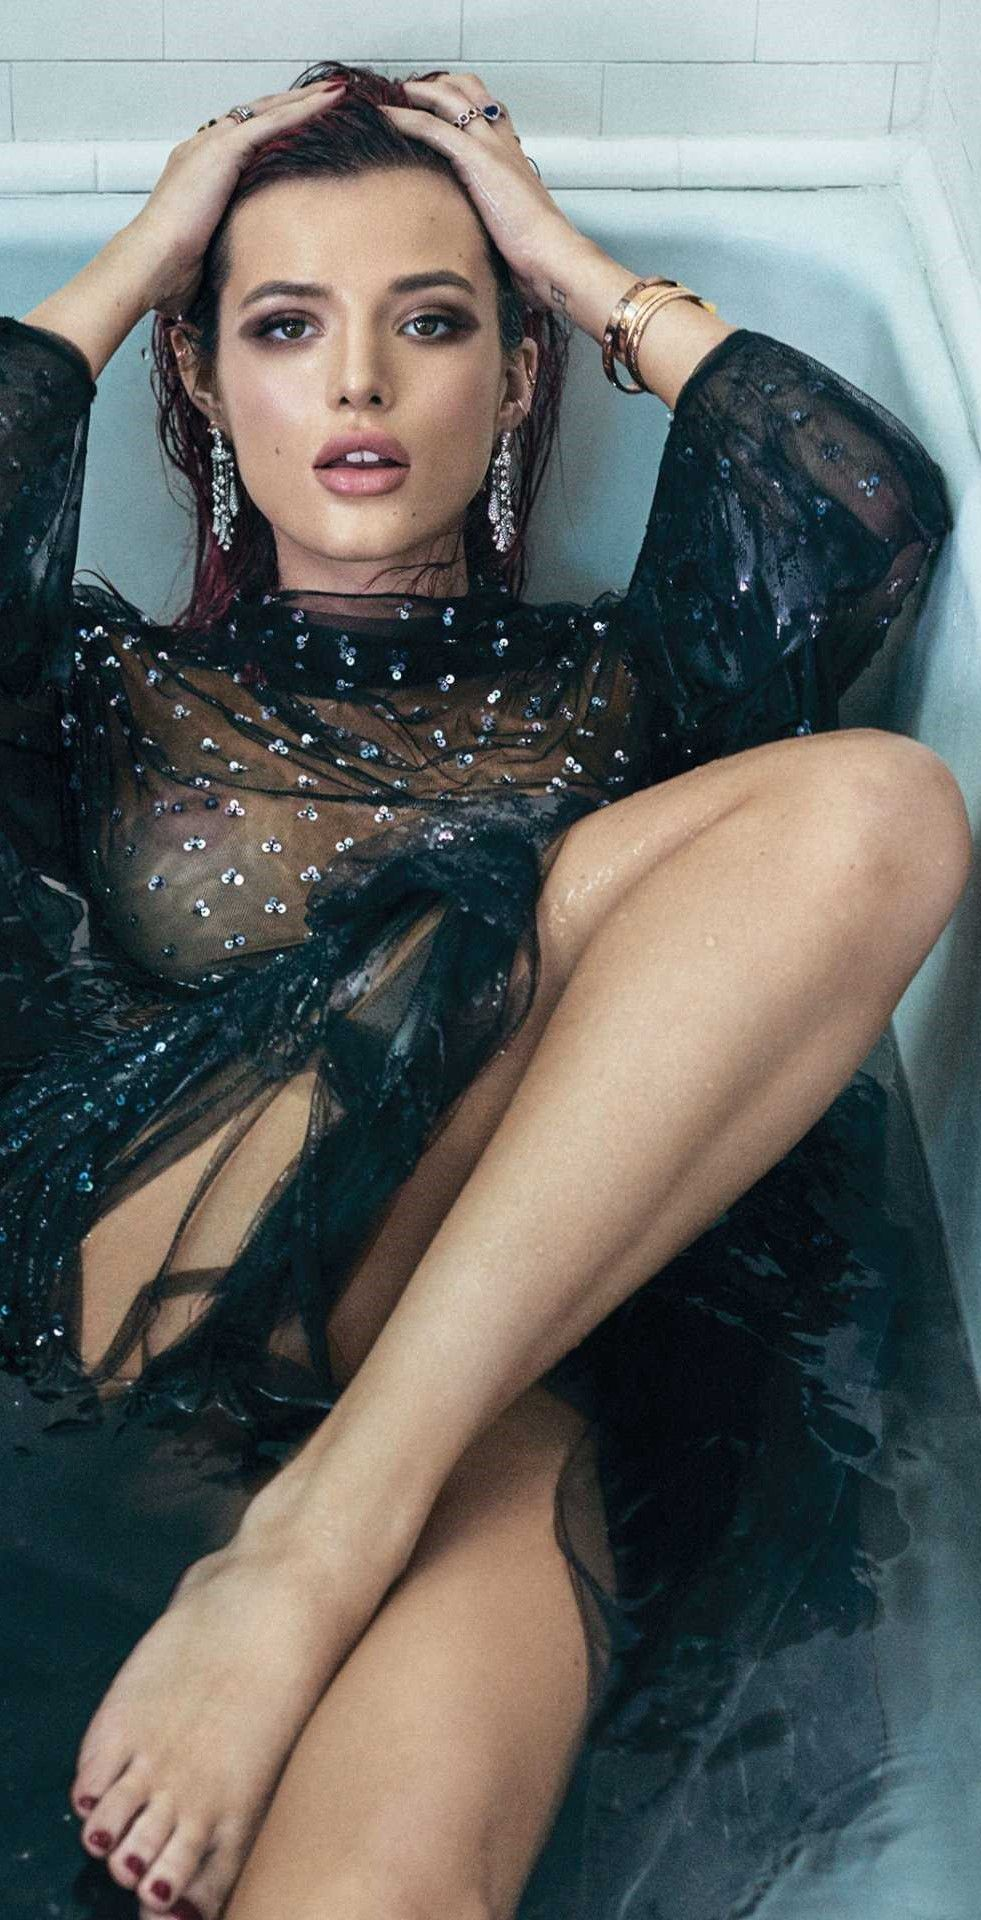 Bella thorne gq mexico magazine finally without glitter - 2019 year